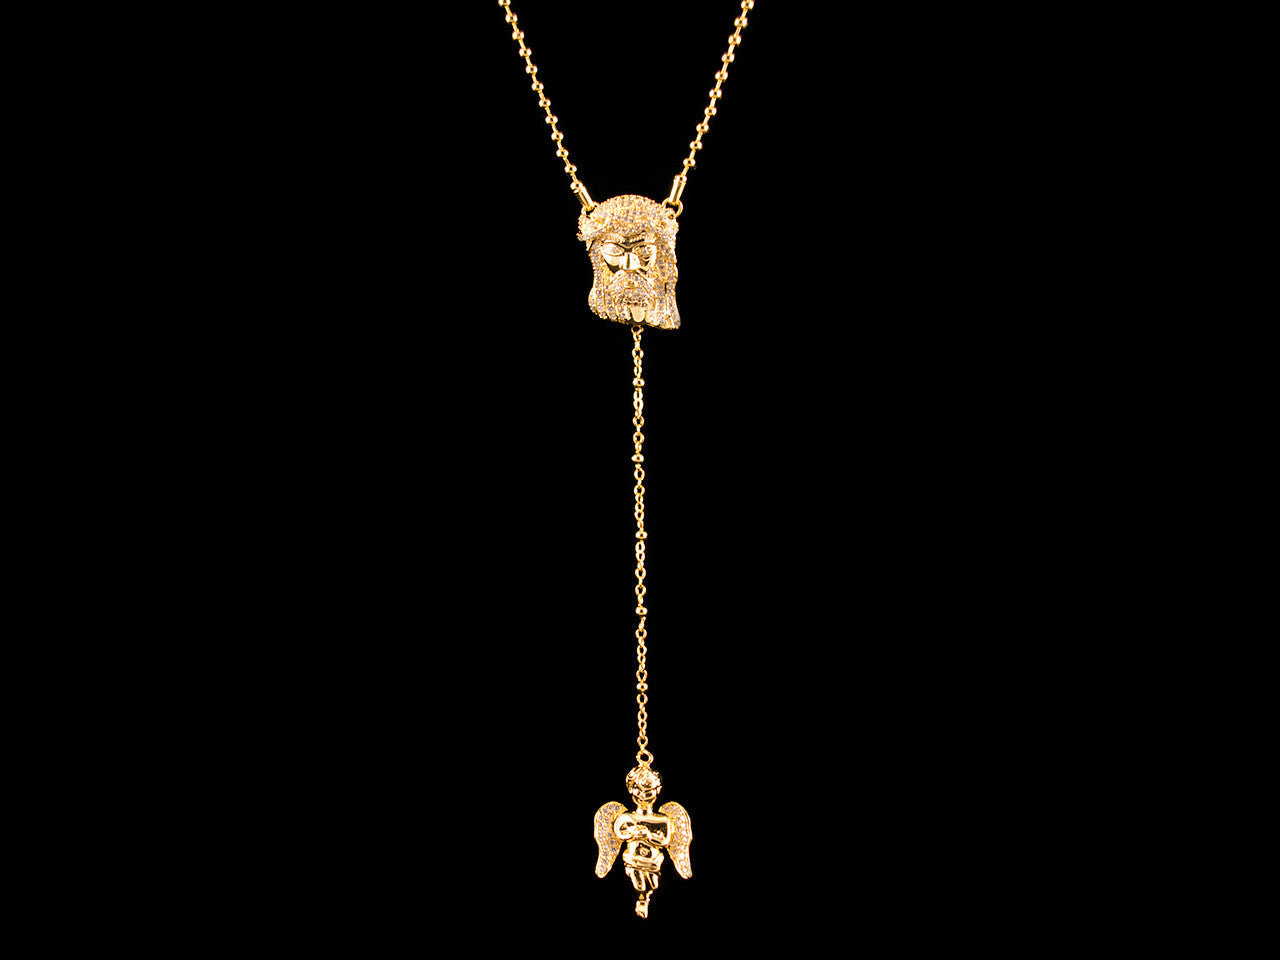 18K Gold Beaded Rosary Jesus & Angel Necklace - 28 Inch